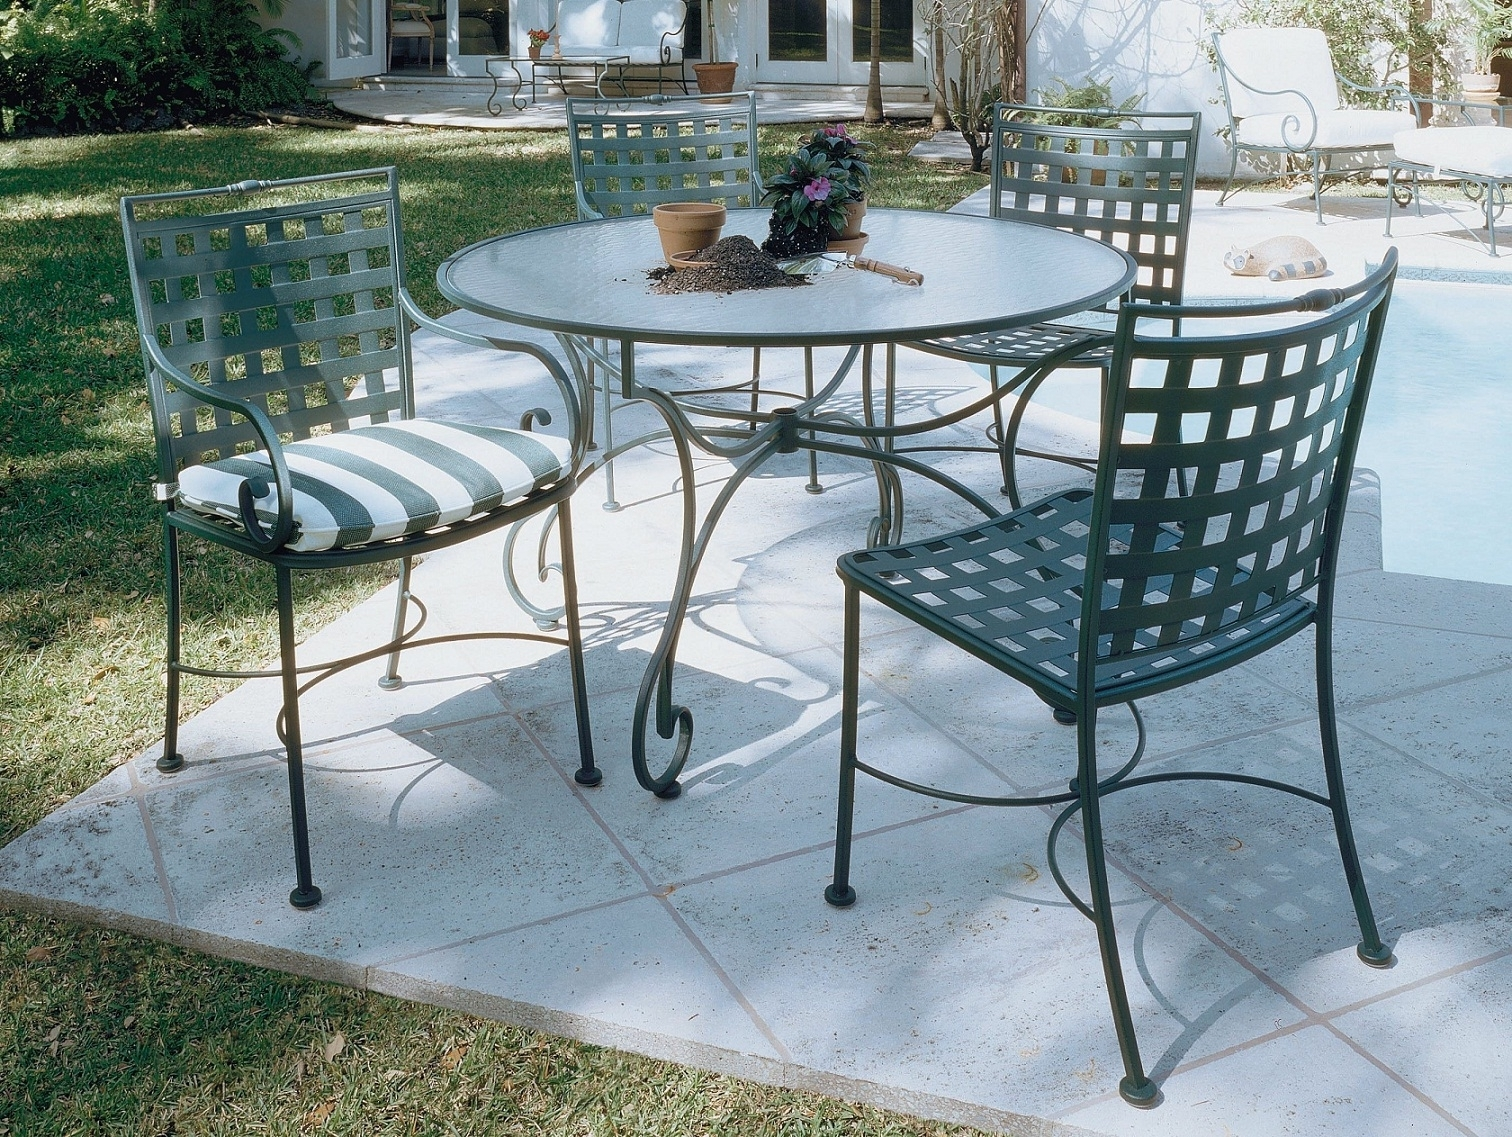 Fashionable Lovely Wrought Iron Patio Tables Outdoor Wrought Iron Patio For Wrought Iron Patio Conversation Sets (View 17 of 20)